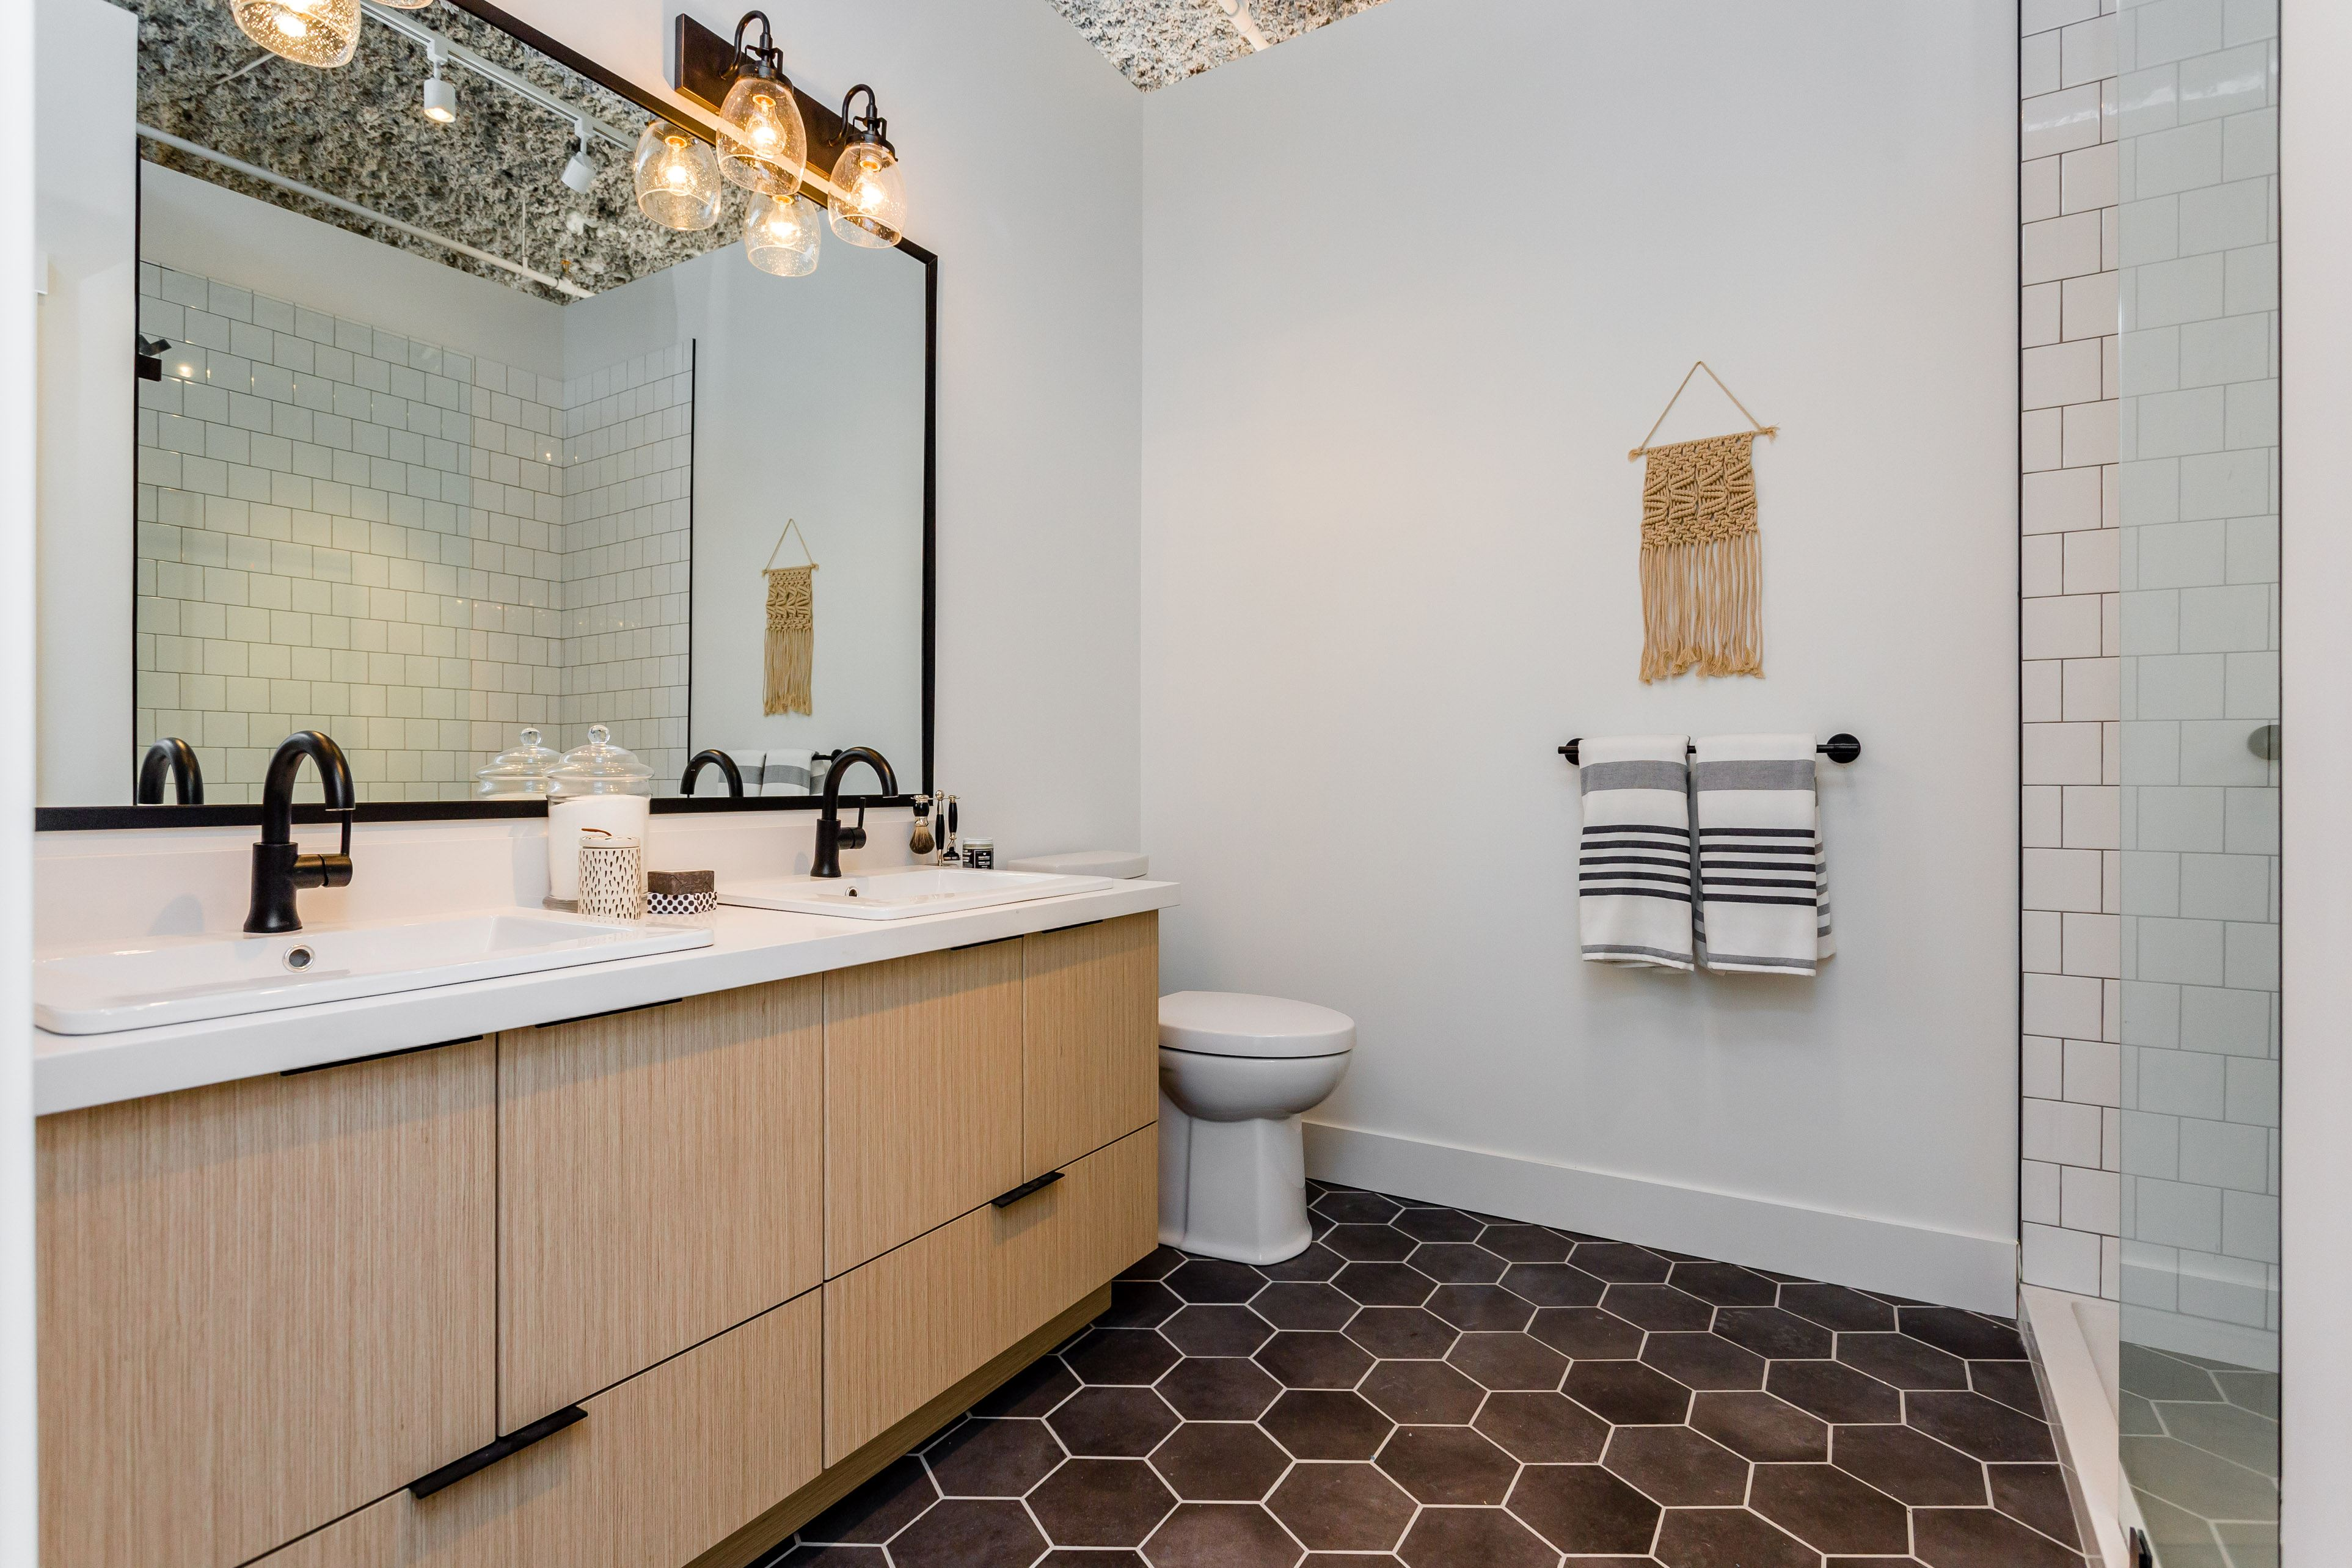 Bathroom interior design concept for Hudson & Singer condominiums in Willoughby Town Centre, Langley.